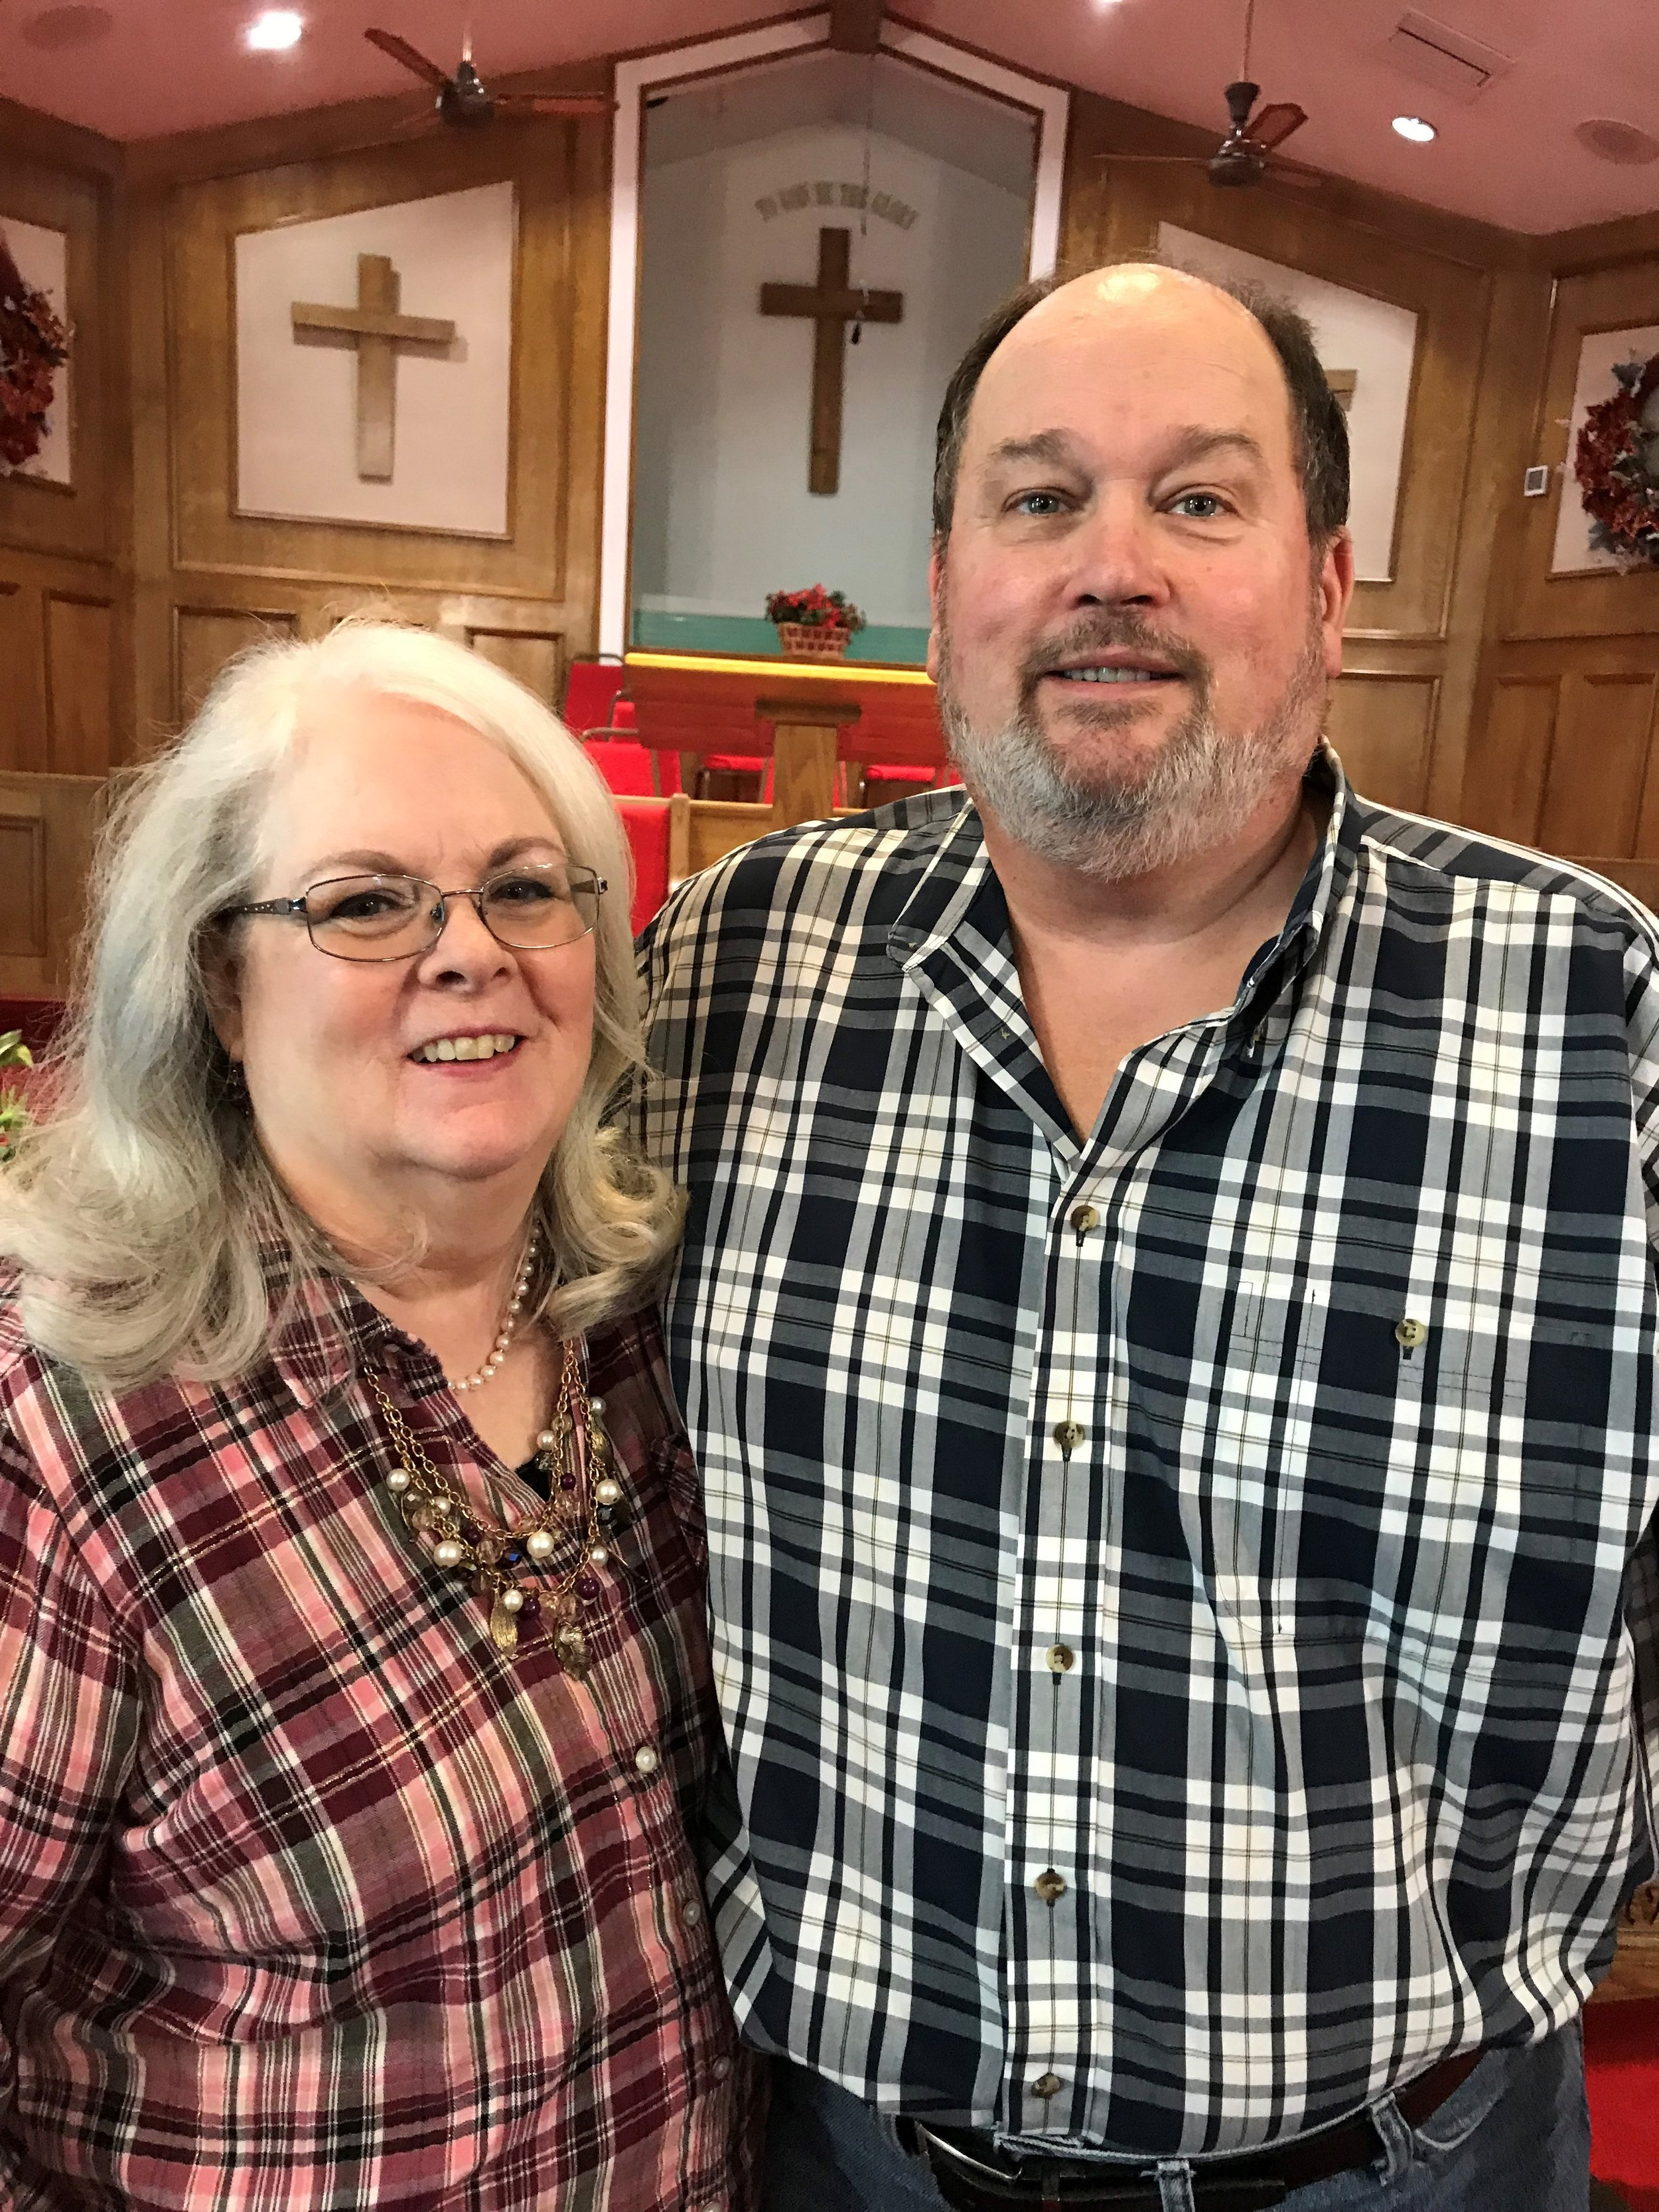 Michael & Catherine Moore - Join us for a scripture-by-scripture Bible study as we work in fellowship to gain understanding and deepen our relationship with the Author and Perfecter of our faith, God Most High. Our current study in The Revelation begins January 2019. Please accept this invitation to join us in our study of God's Word. Come with your questions and join the discussion as we dive into God's Word.